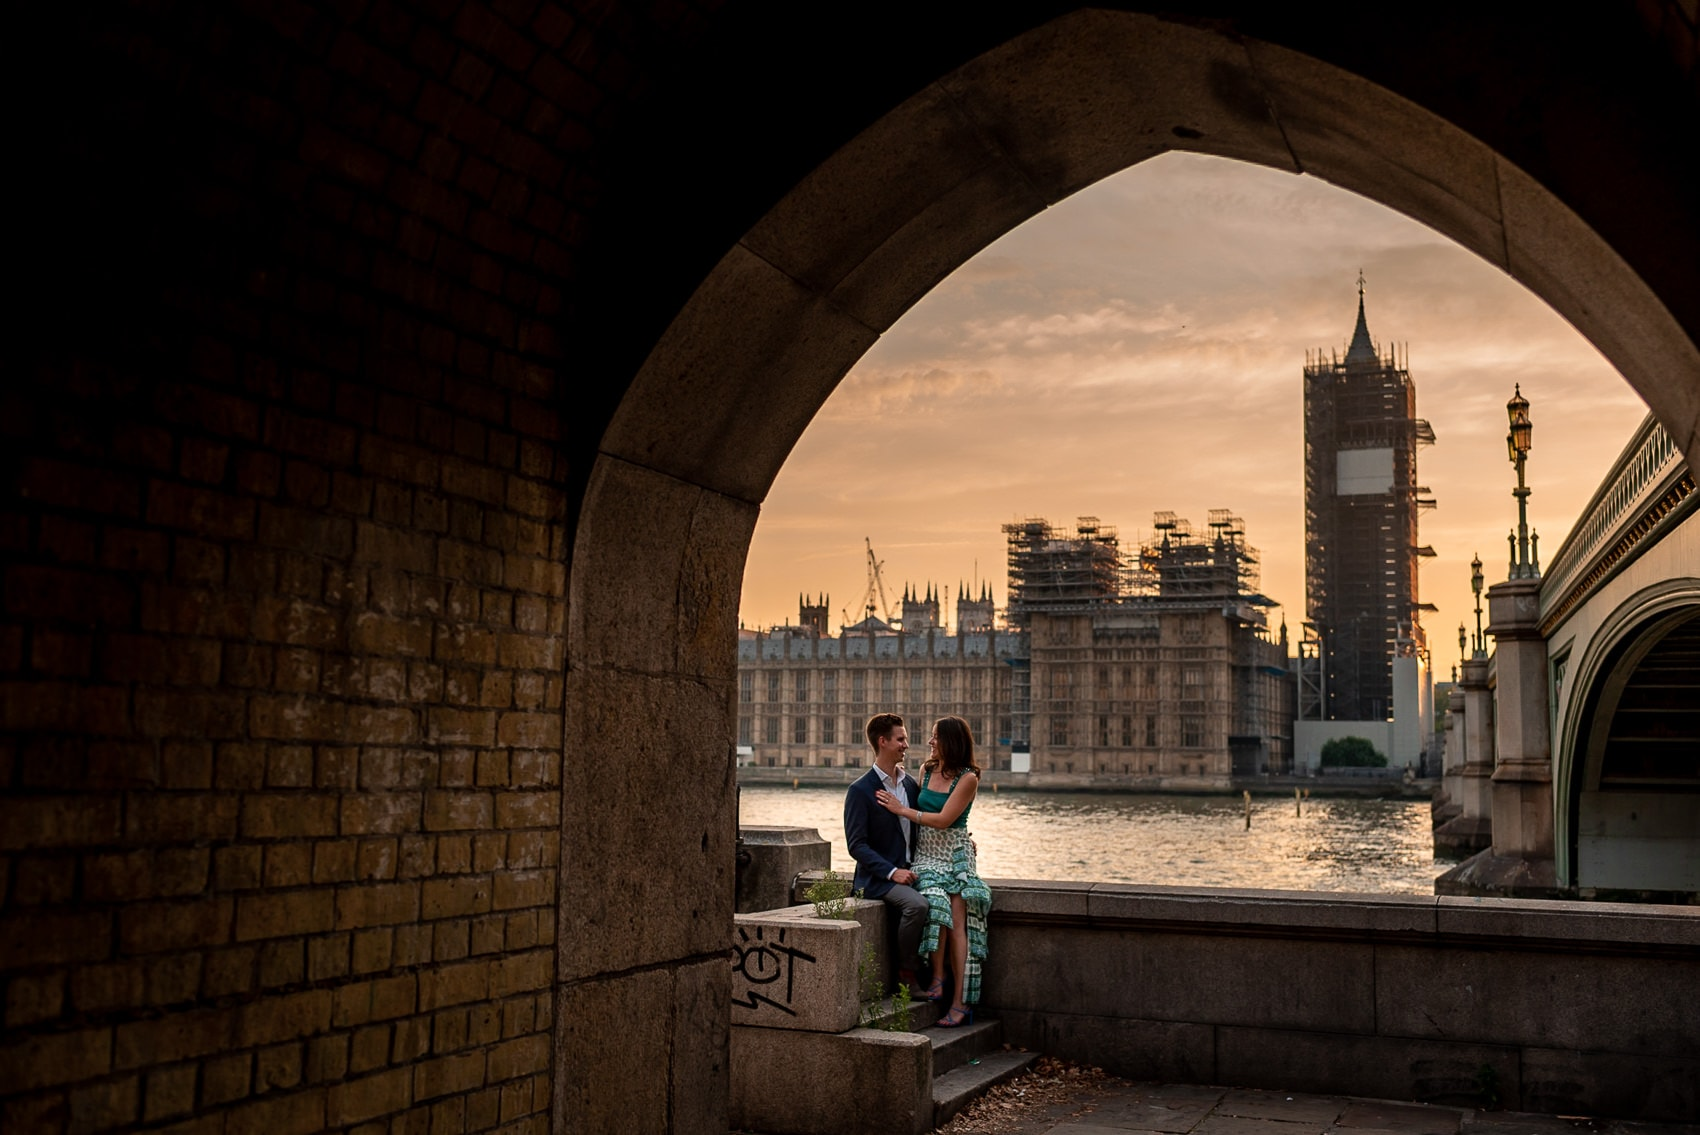 Couple sitting next to the thames in front of Big Ben with scaffolding at sunset